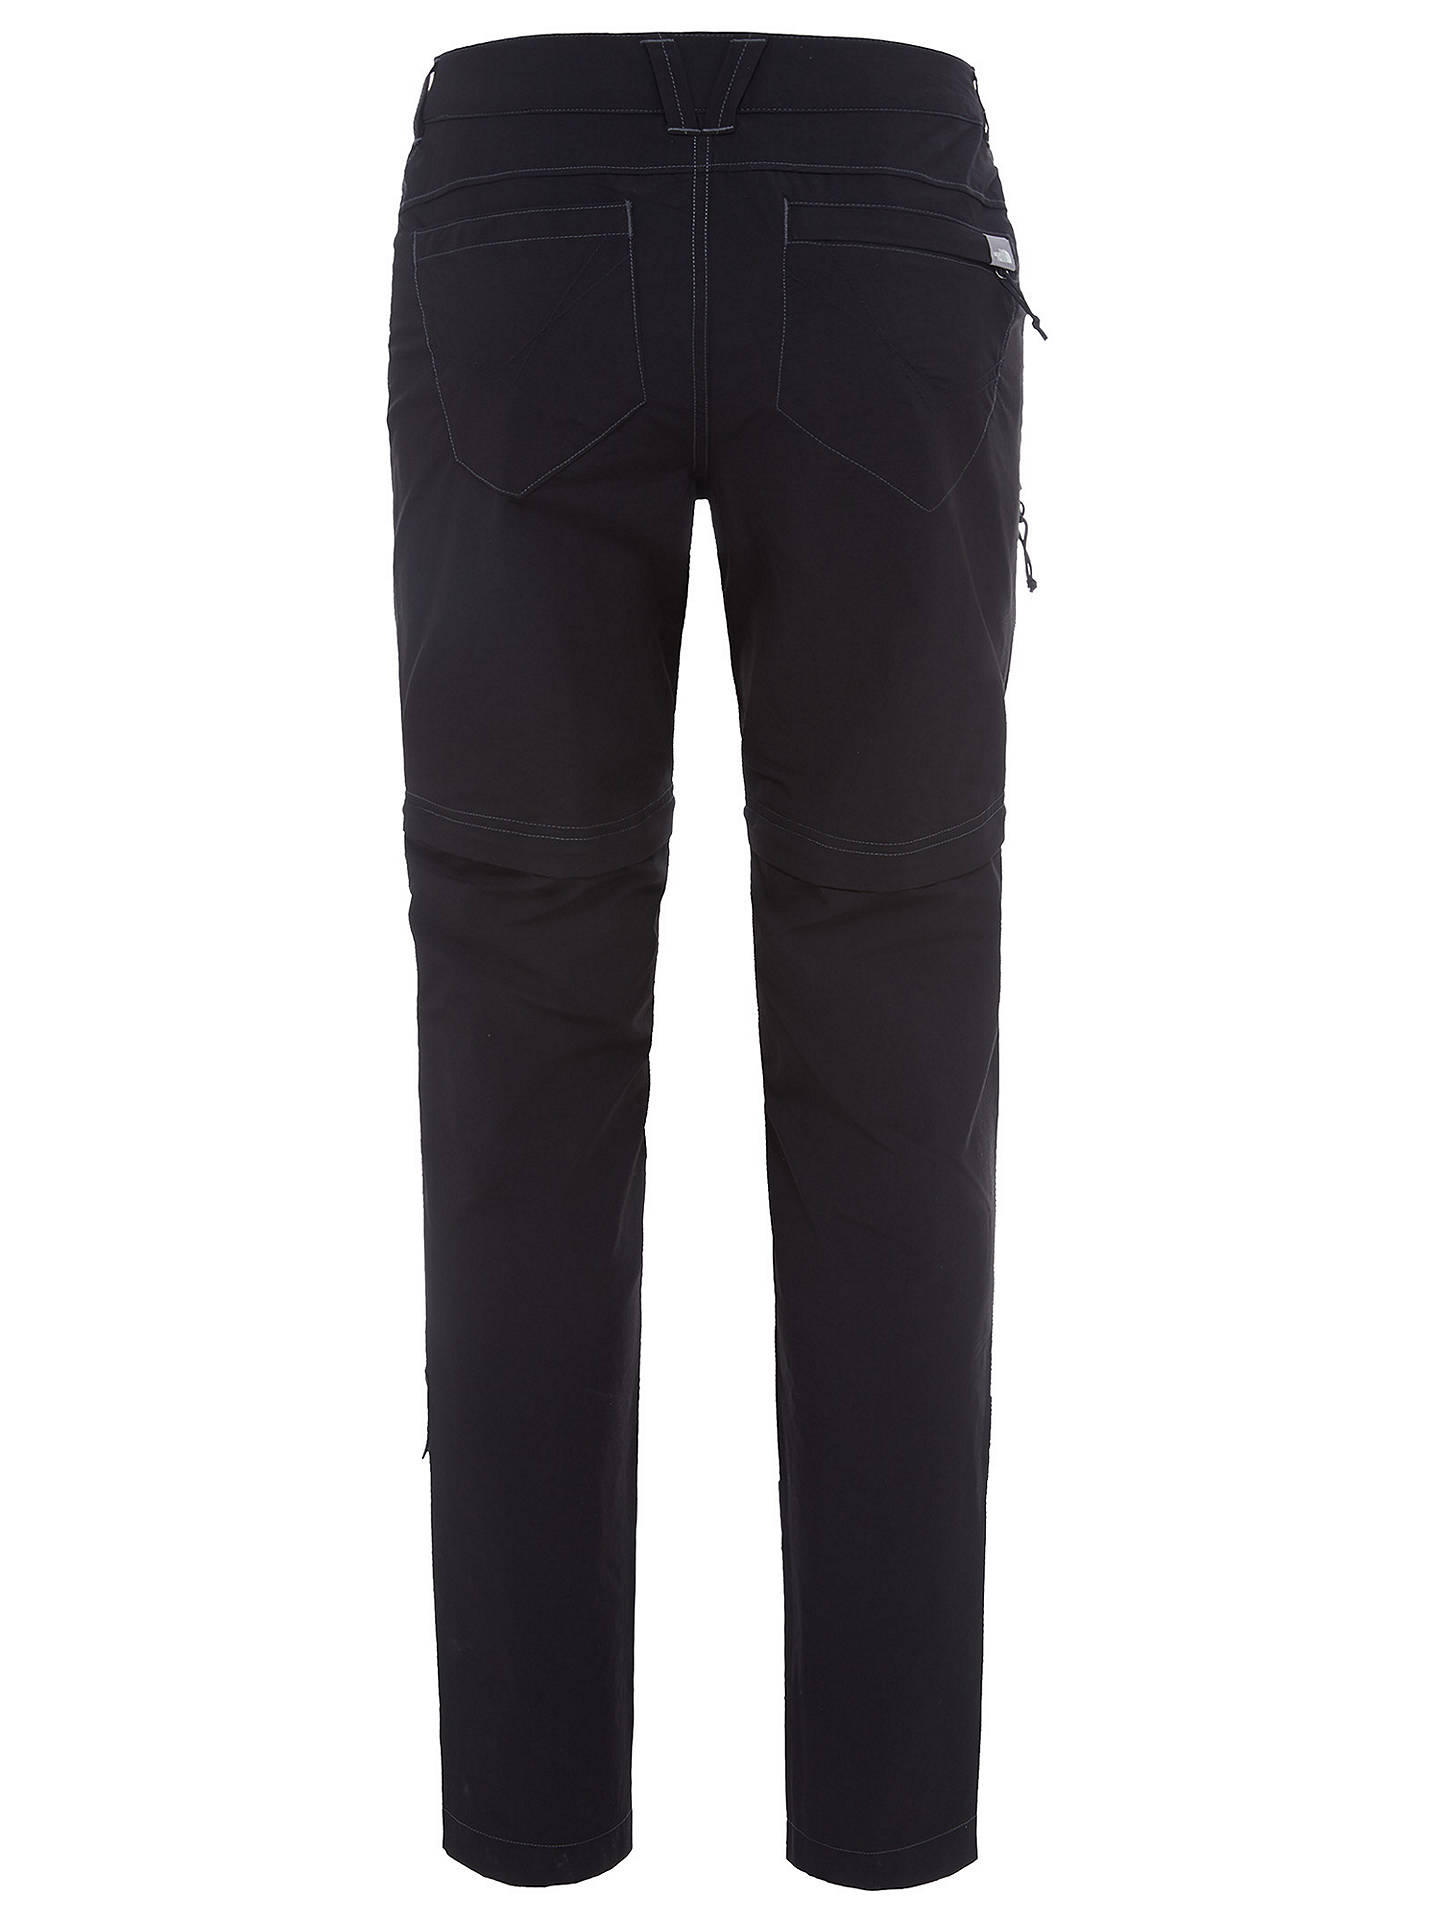 Buy The North Face Exploration Convertible Trousers, Black, L Online at johnlewis.com